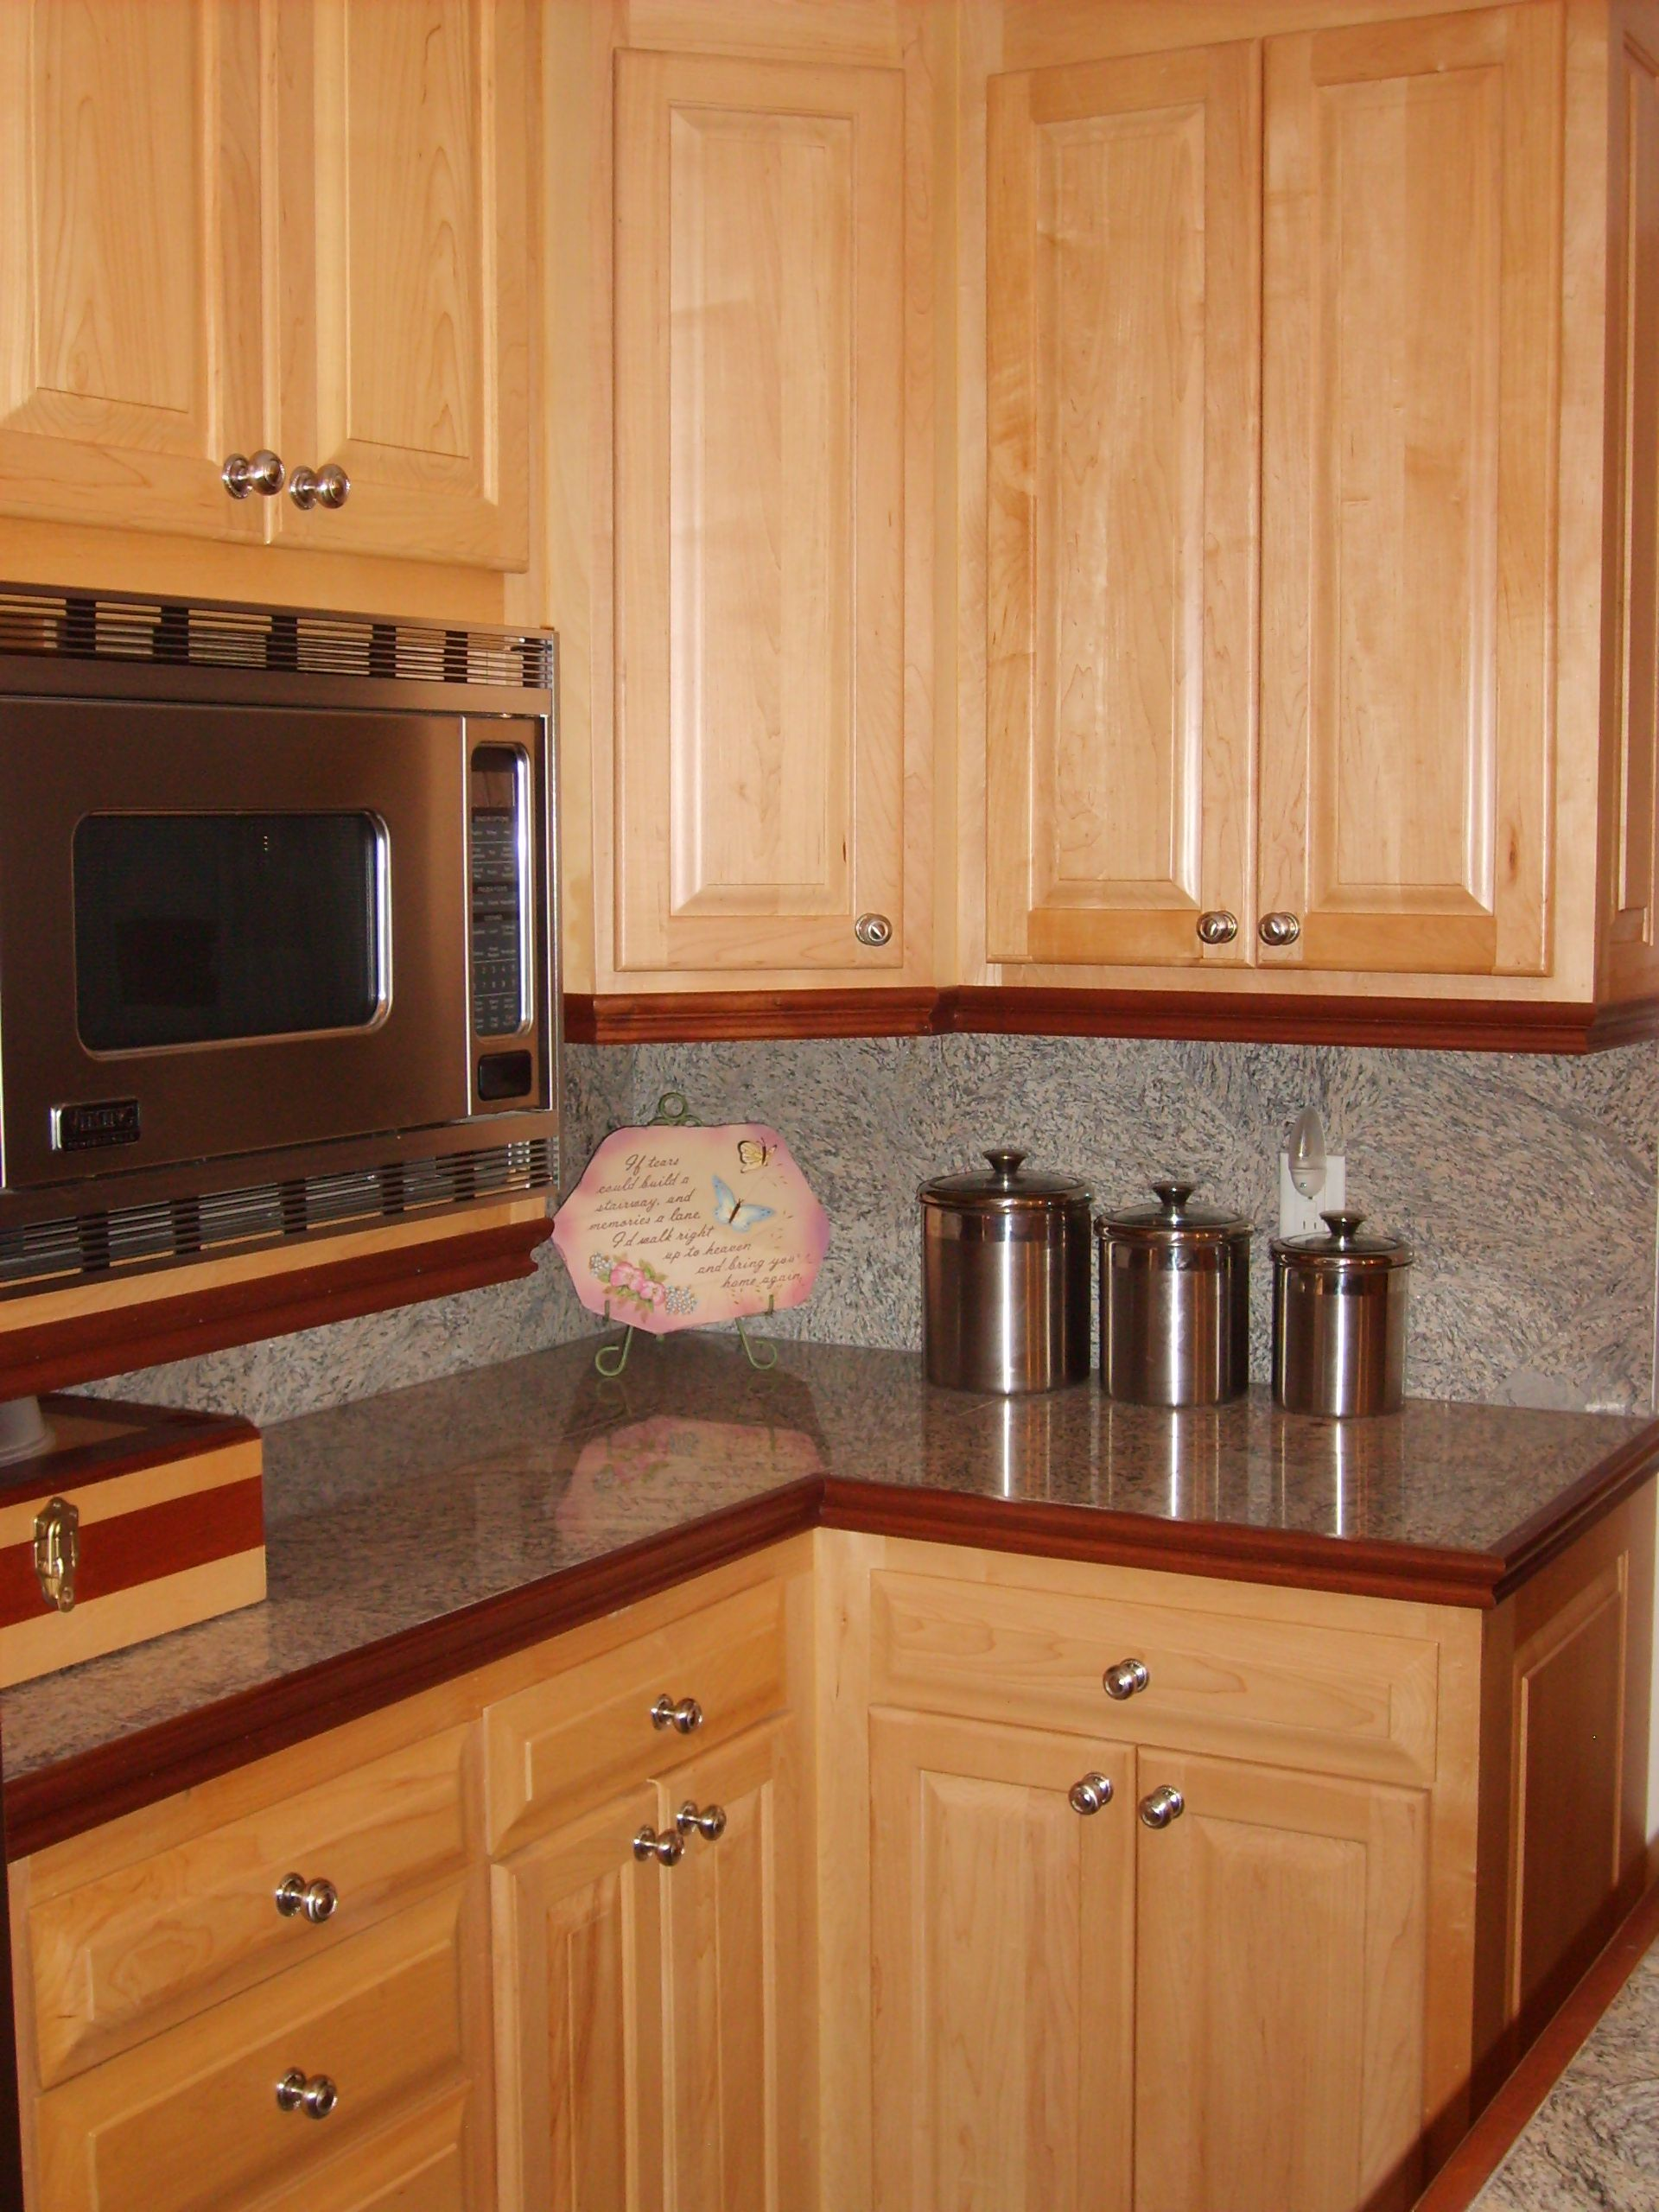 Pictures Of Kitchens With Natural Maple Cabinets  Maple Cabinets Awesome Wood Cabinet Kitchen Design Decorating Design